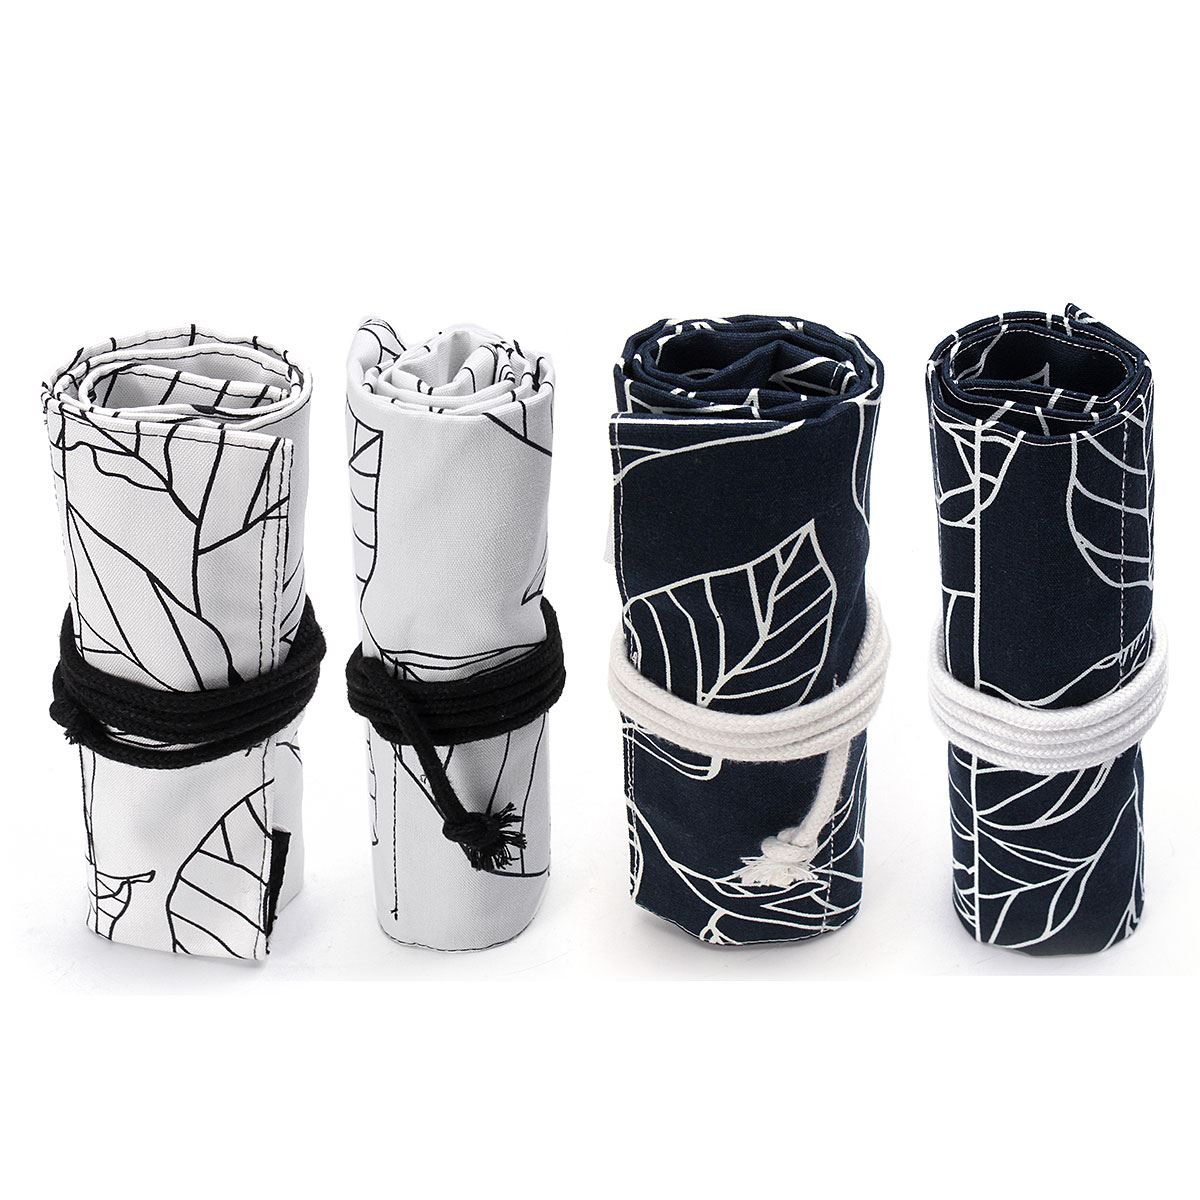 Kicute 36/48 Holes Black White Leaves Canvas Roll Up Pencil Case Pen Brush Bag Holder Storage Pouch School Supplies big capacity high quality canvas shark double layers pen pencil holder makeup case bag for school student with combination coded lock